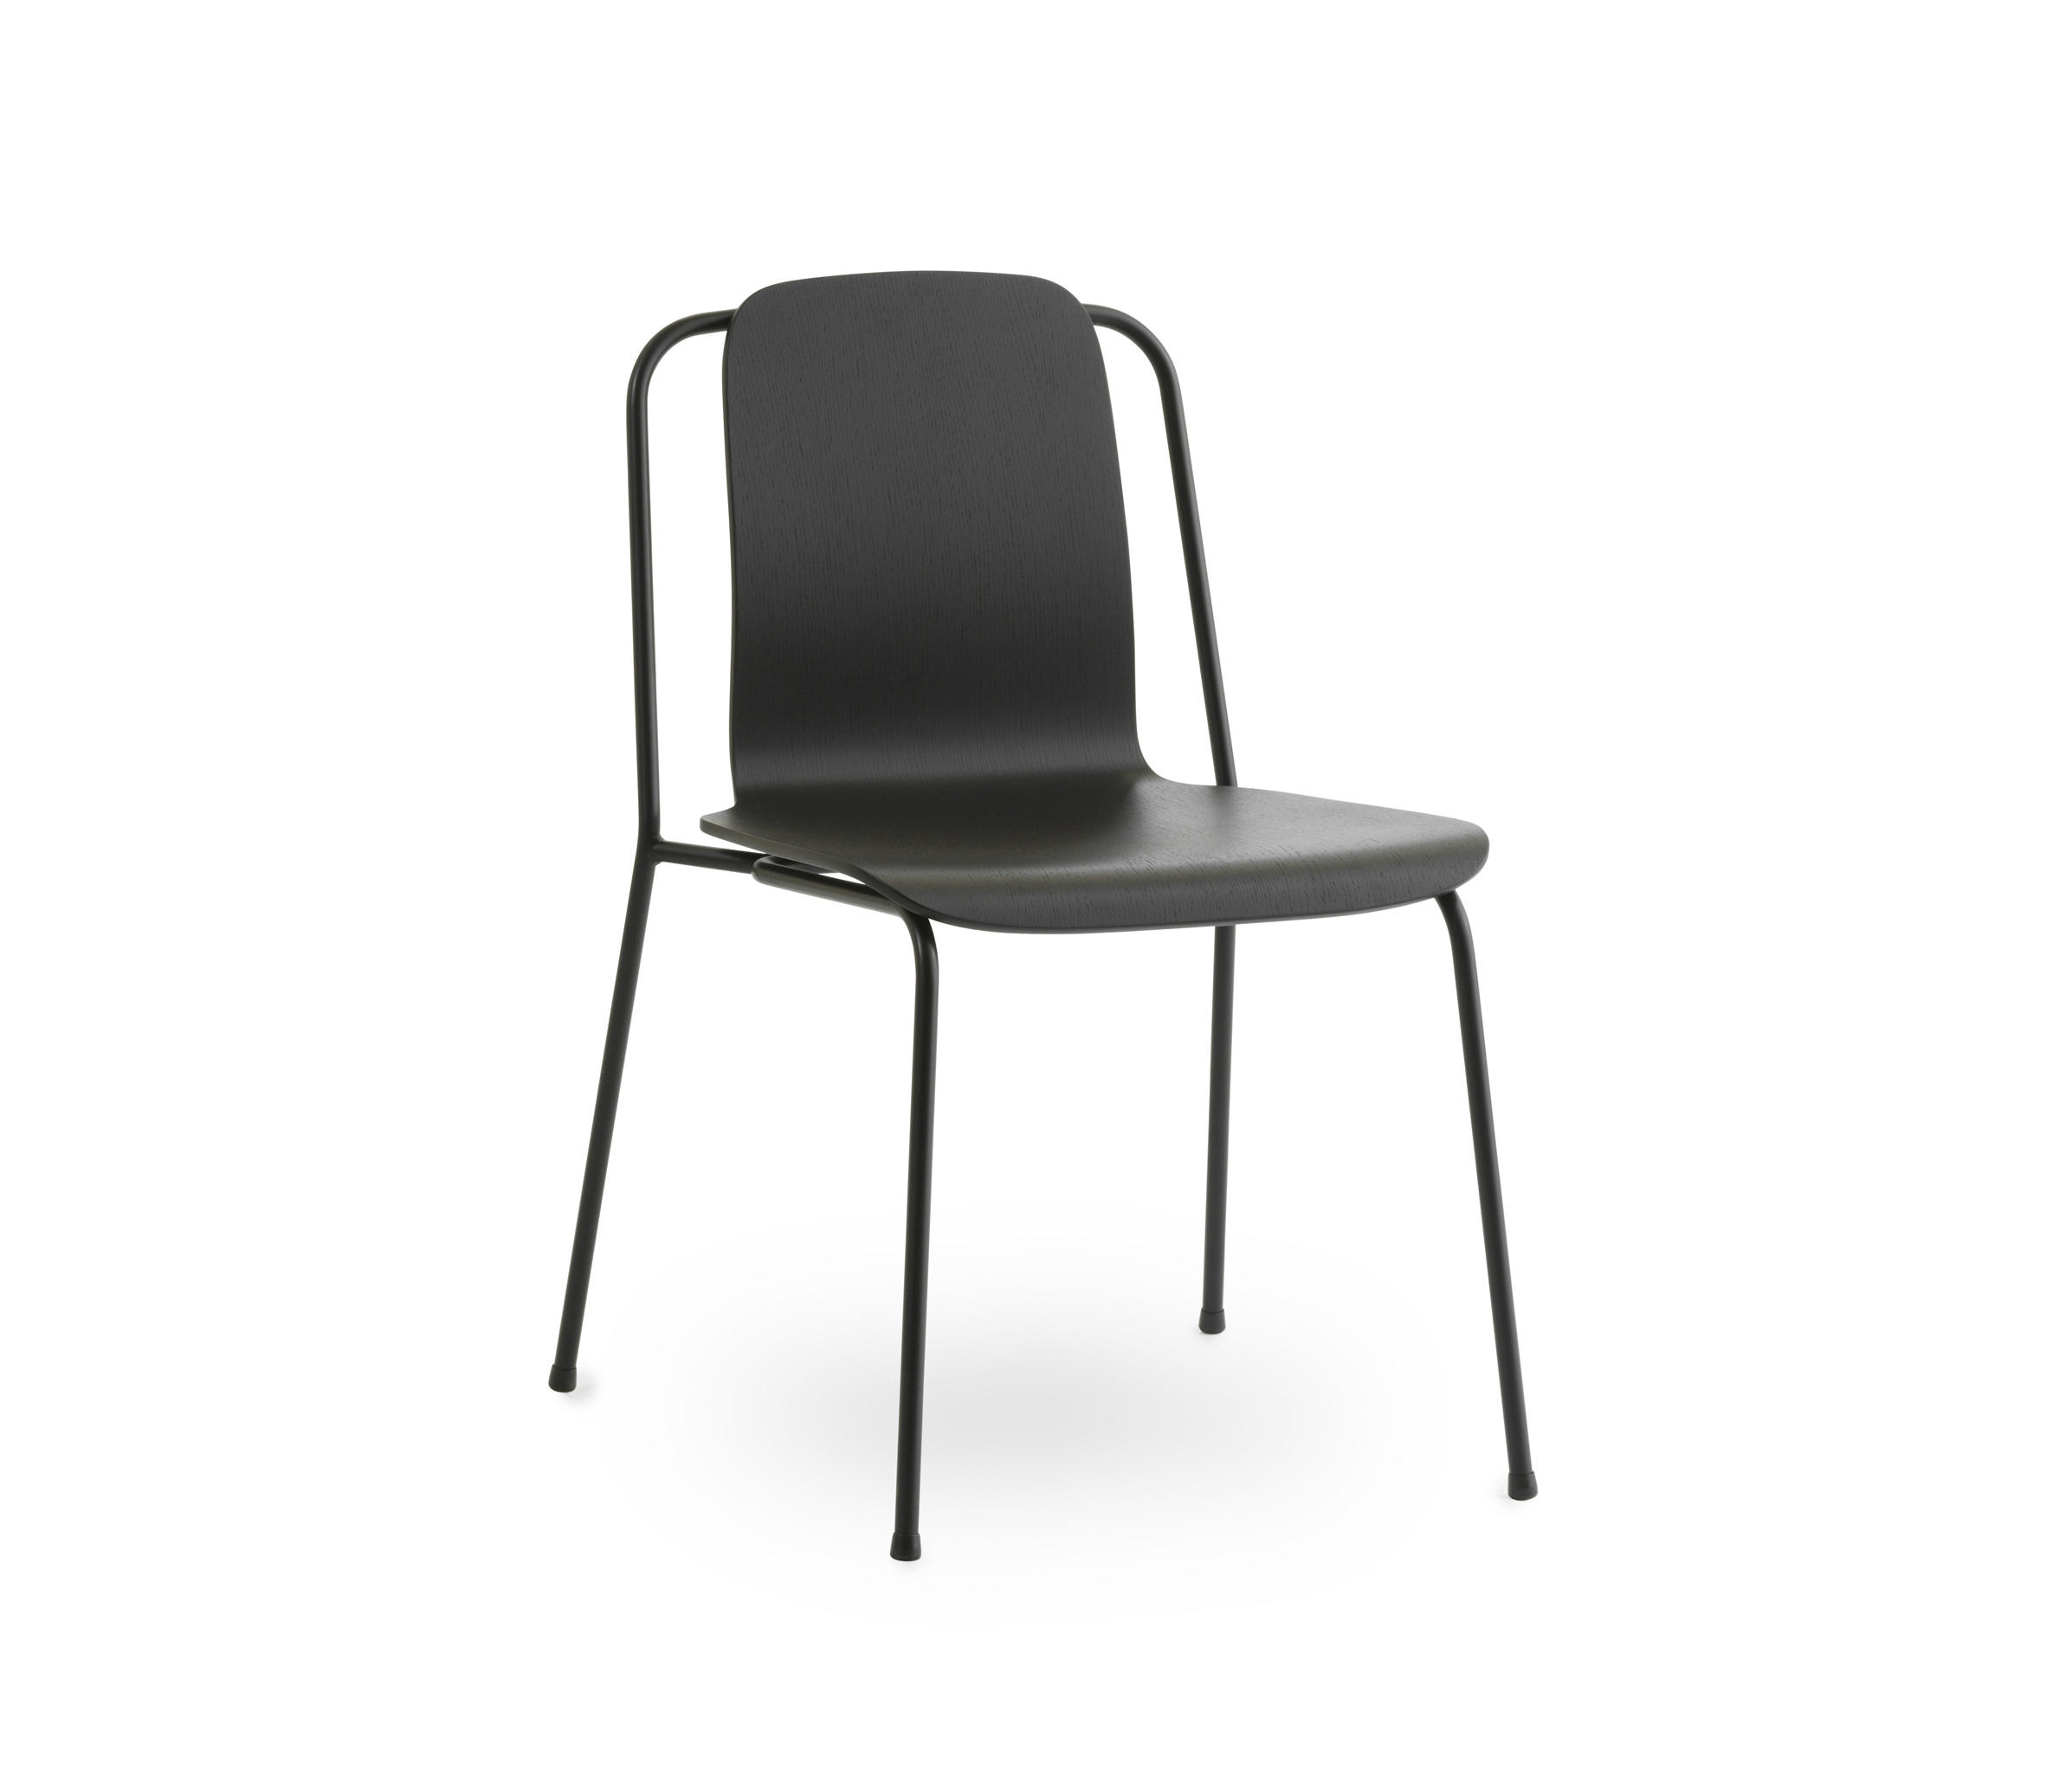 Studio Chairs Studio Chair Chairs From Normann Copenhagen Architonic